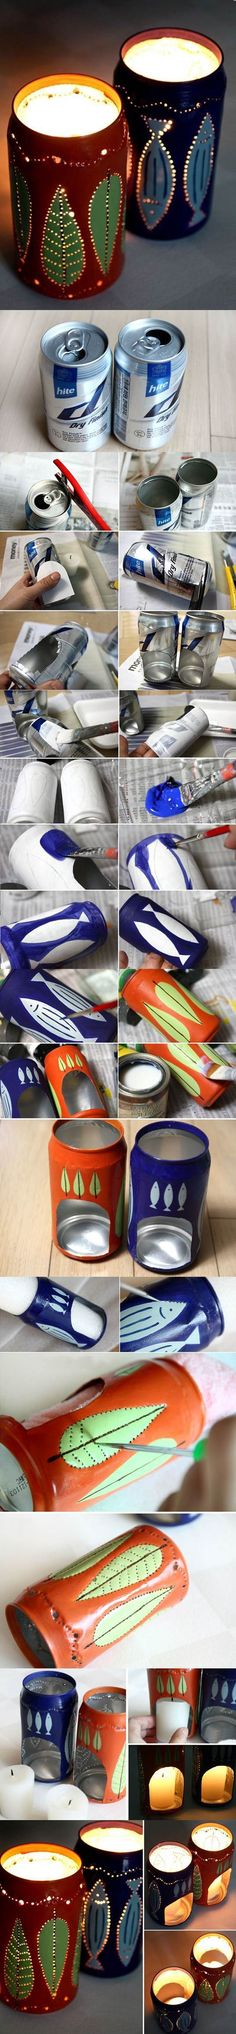 DIY Flickering Candle Holders from Beer Cans 2